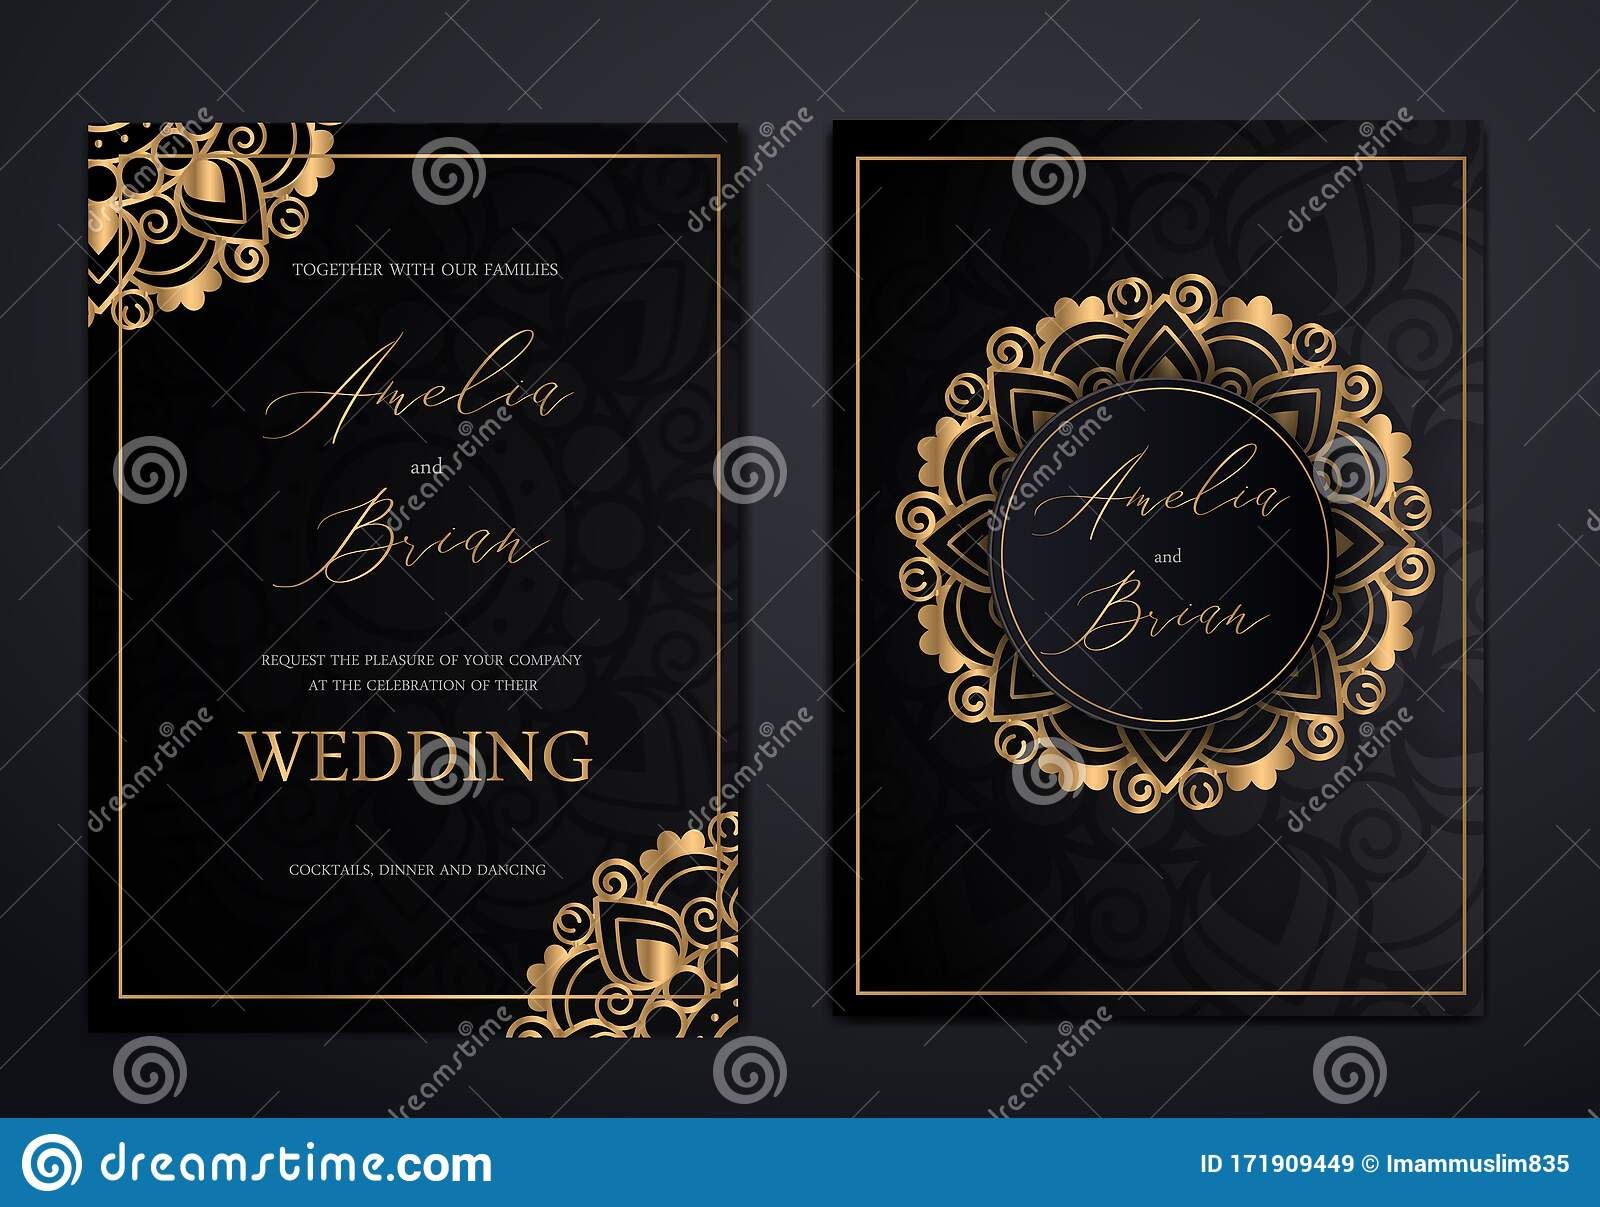 Luxury Elegant Wedding Invitation Cards Stock Vector - Illustration of  decoration, card: 171909449